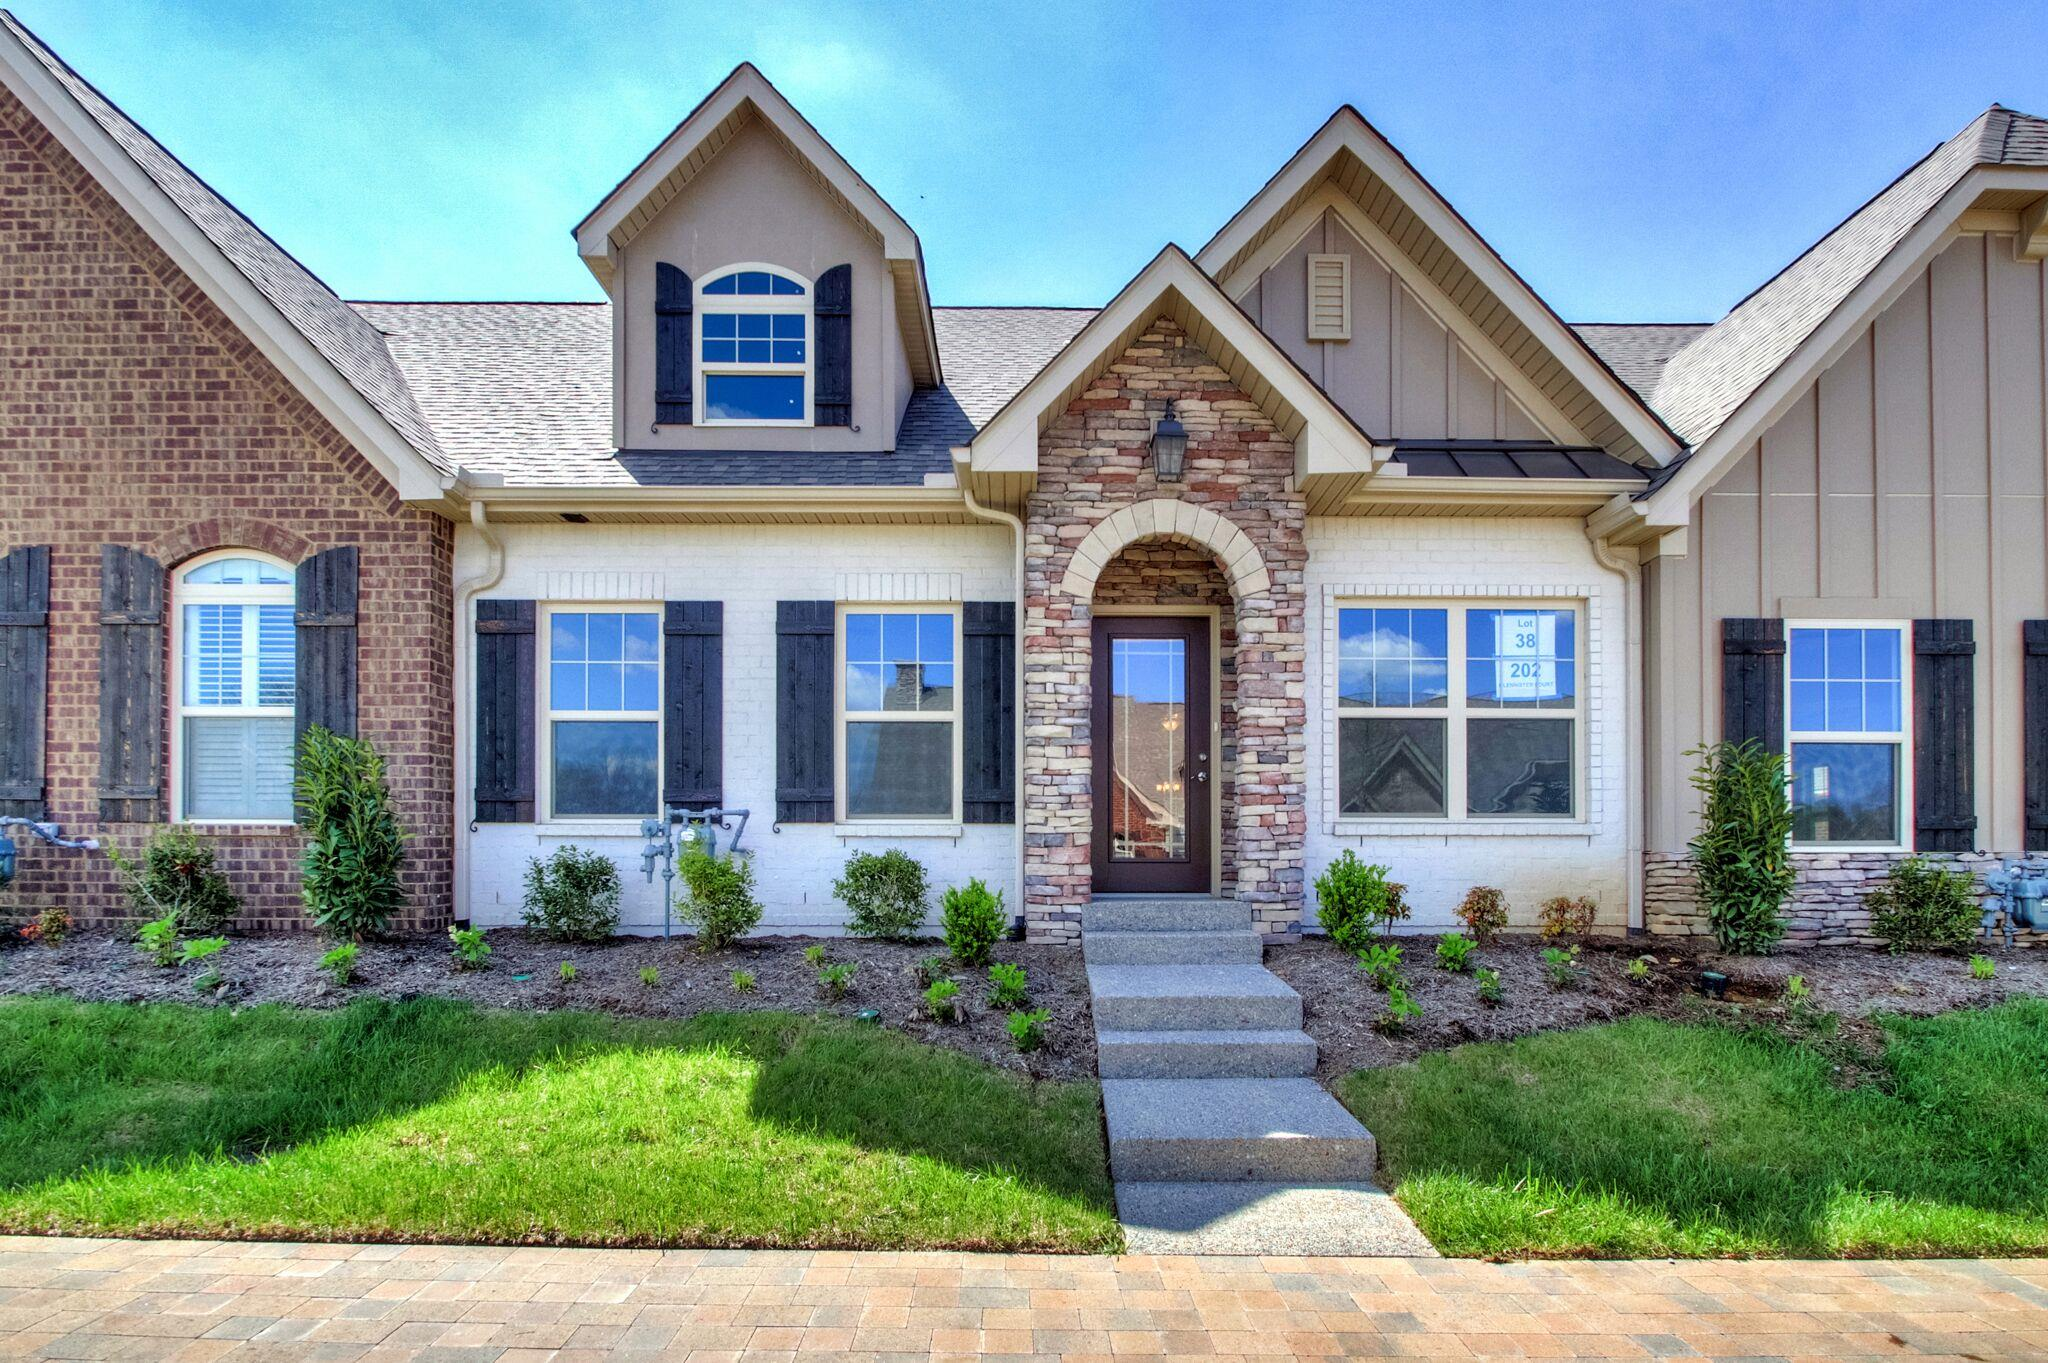 202 Glennister Court,Lot 38, Gallatin in Sumner County County, TN 37066 Home for Sale